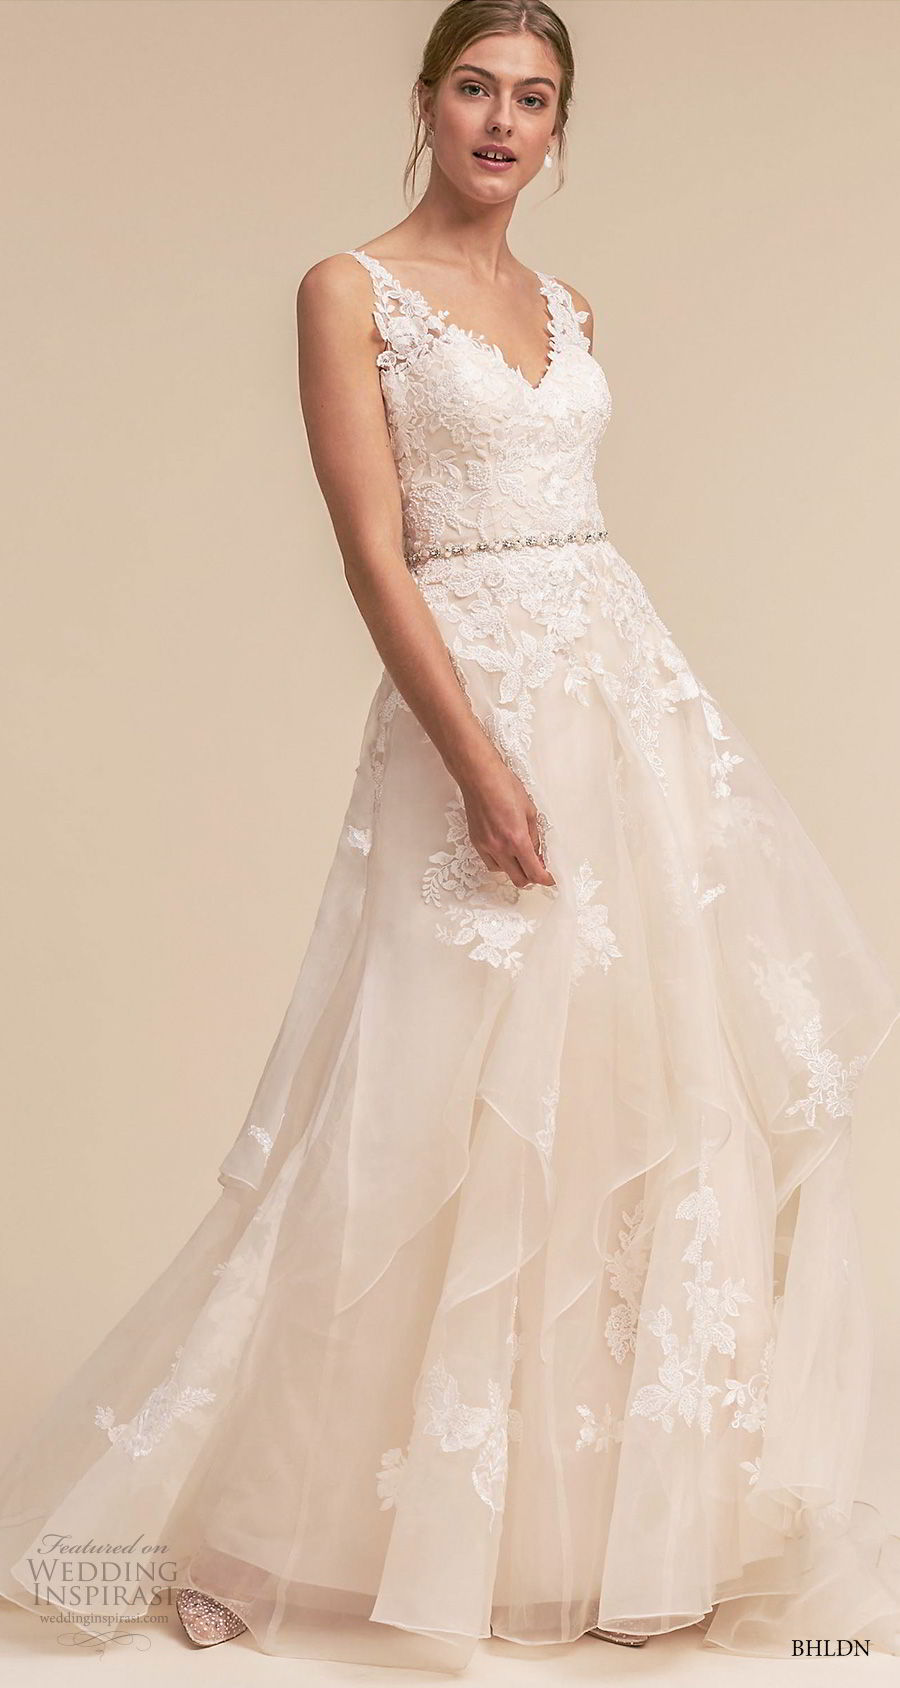 bhldn 2018 whispers bridal sleeveless v neck heavily embellished bodice romantic a line wedding dress open v back sweep train (6) mv